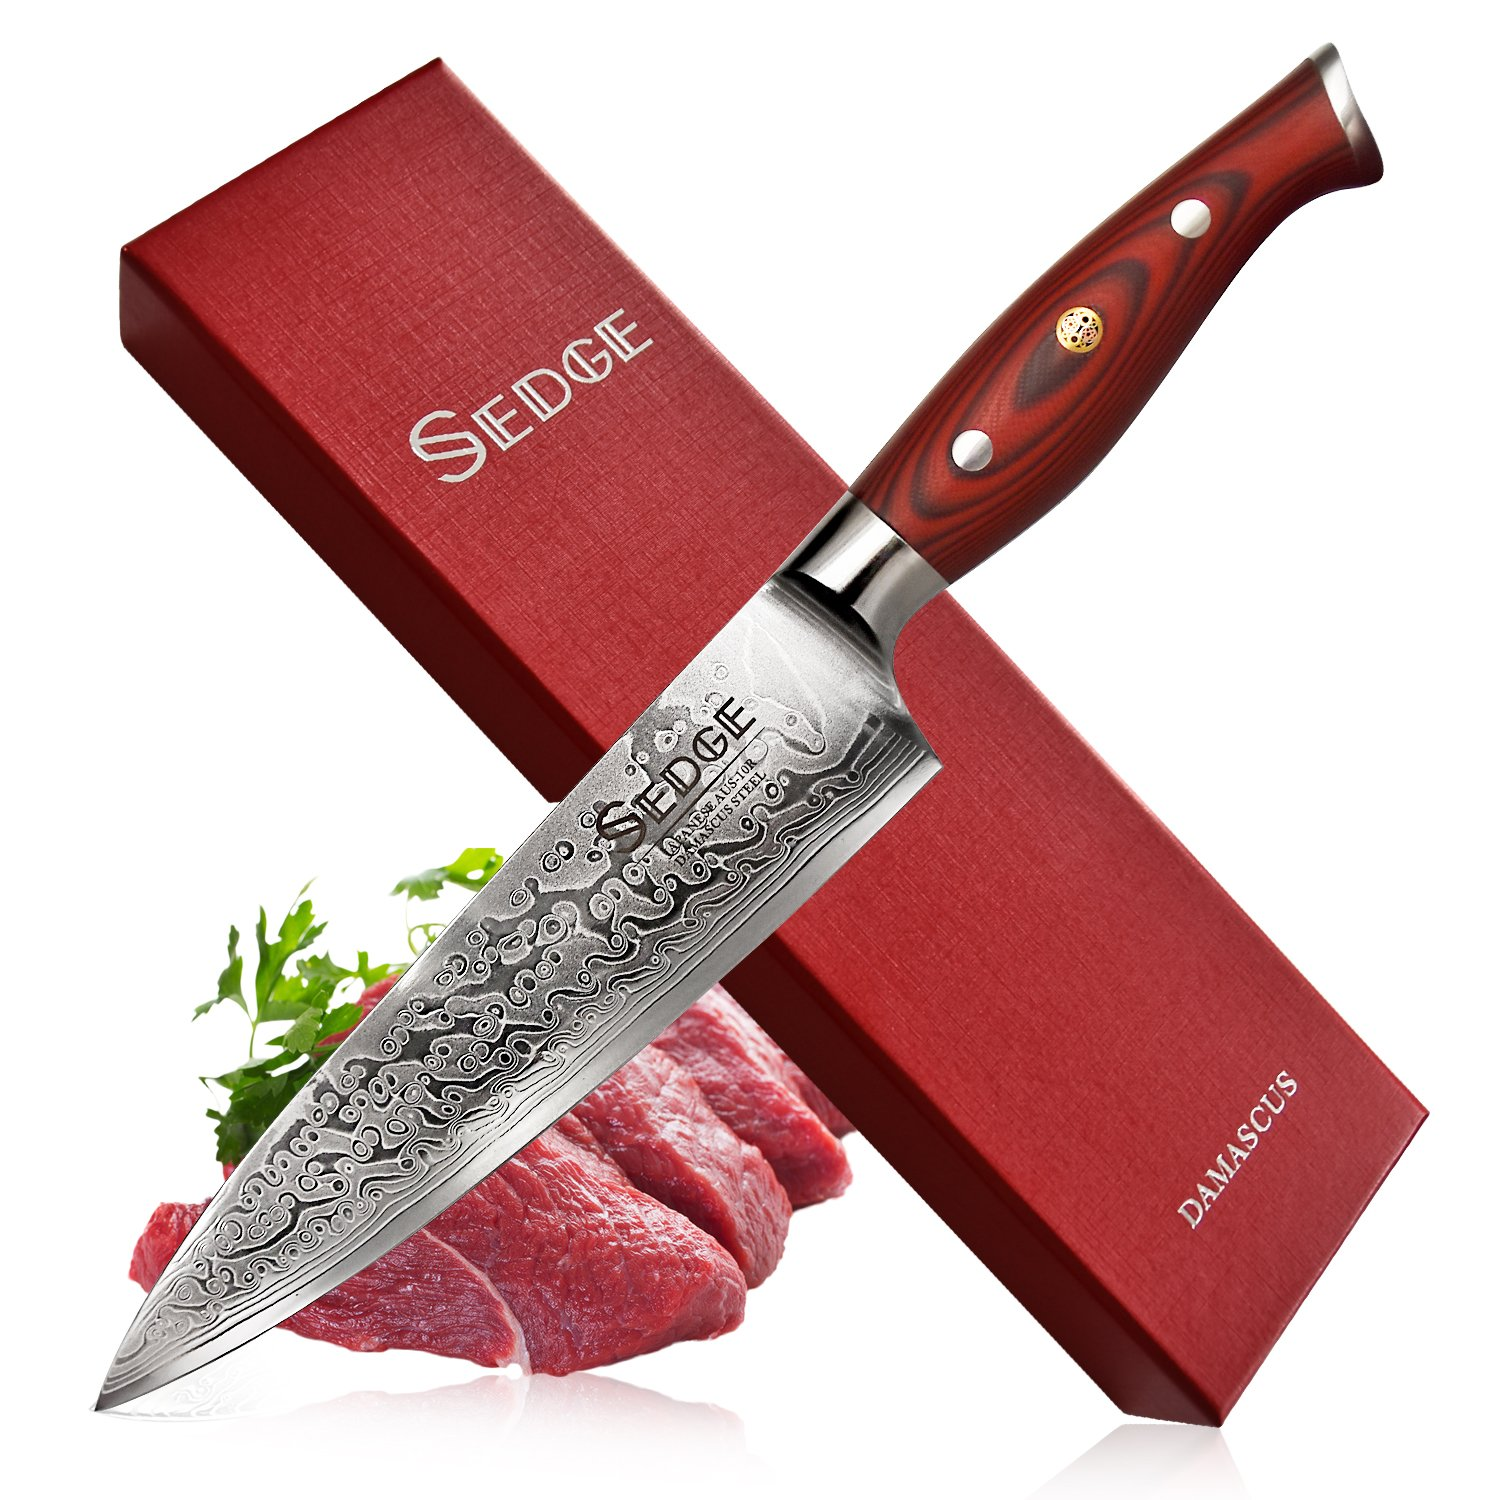 Sedge Chef knife - Japanese Damascus AUS-10V High Carbon Steel - Pro Chefs Knife 8 Inch With Non-Slip Ergonomic G10 Handle - SD-S Series